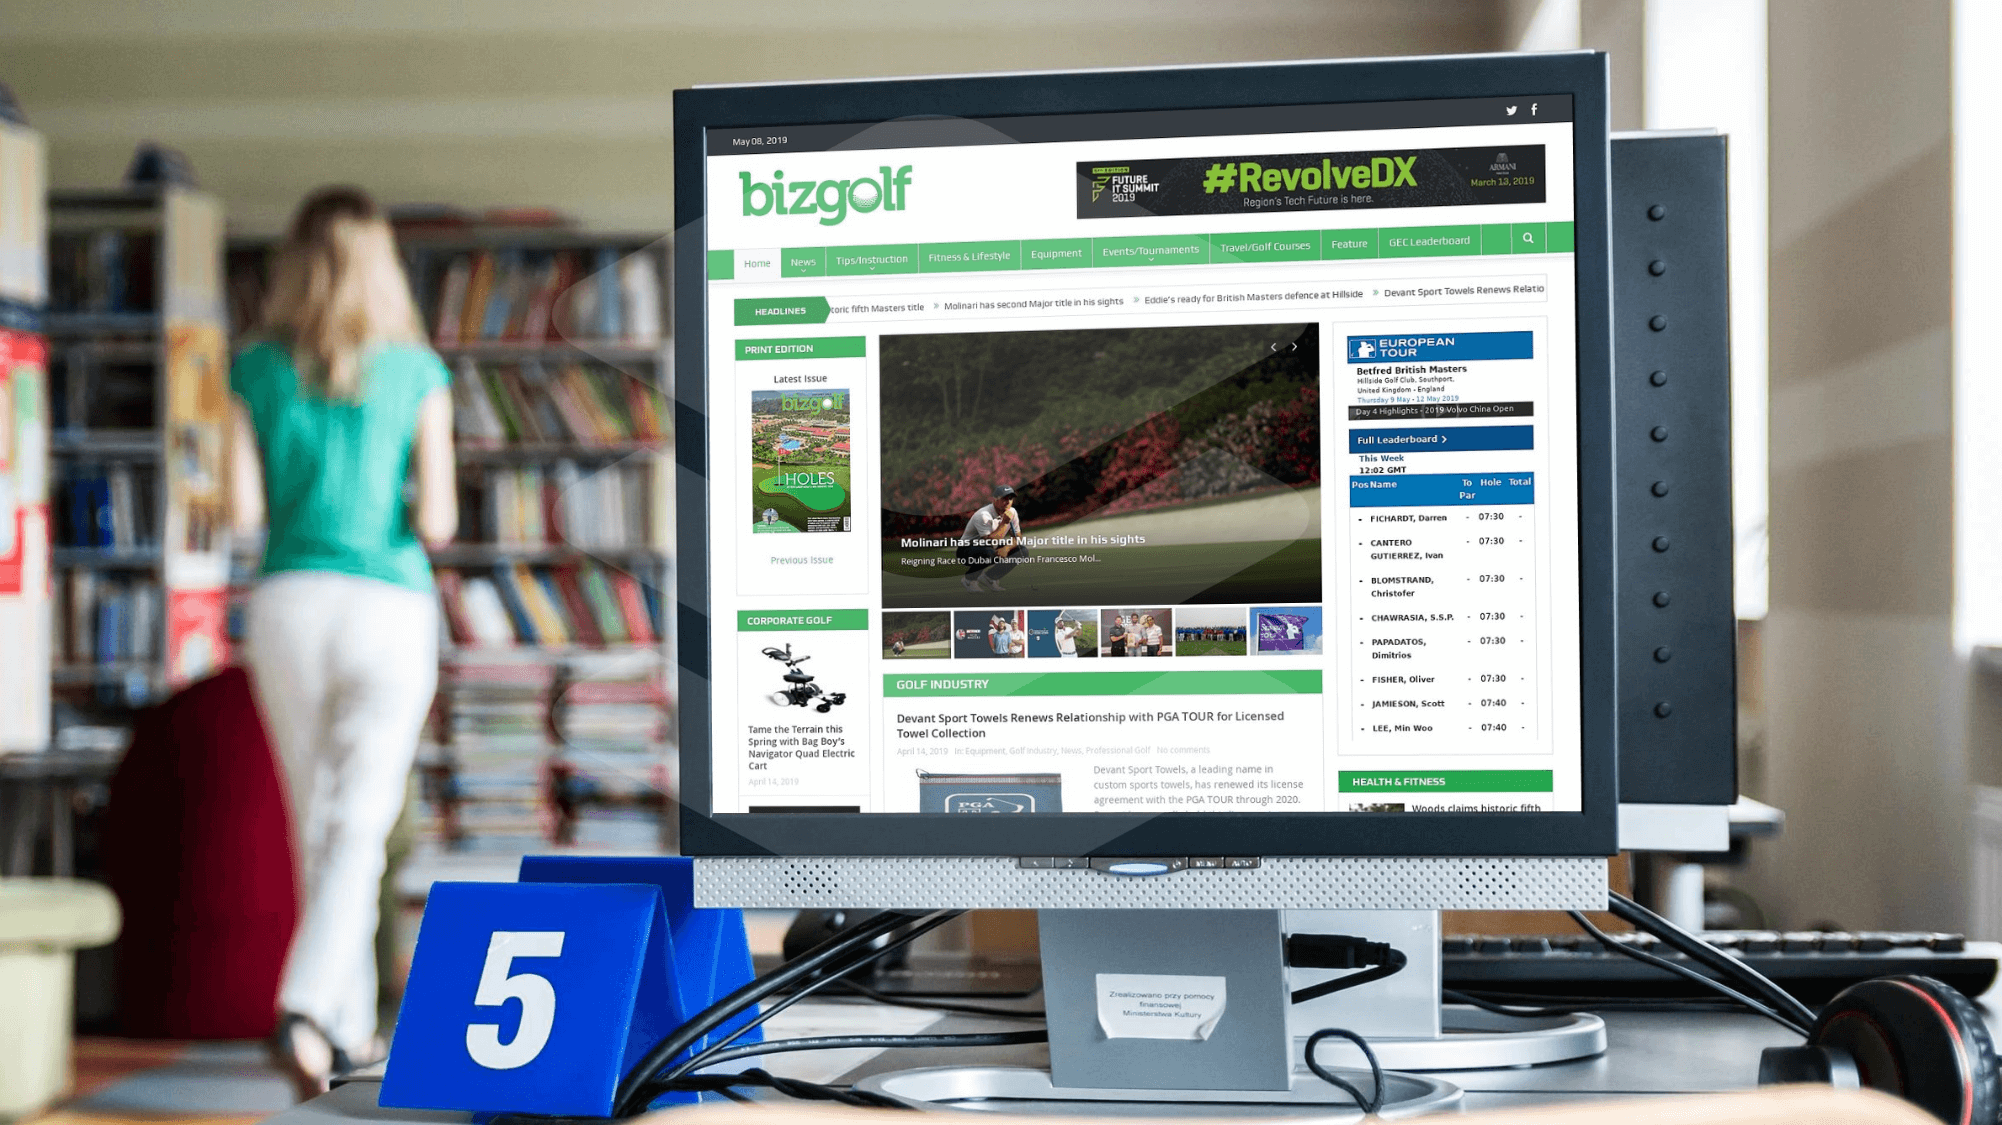 digital marketing casestudies bizgolf 3